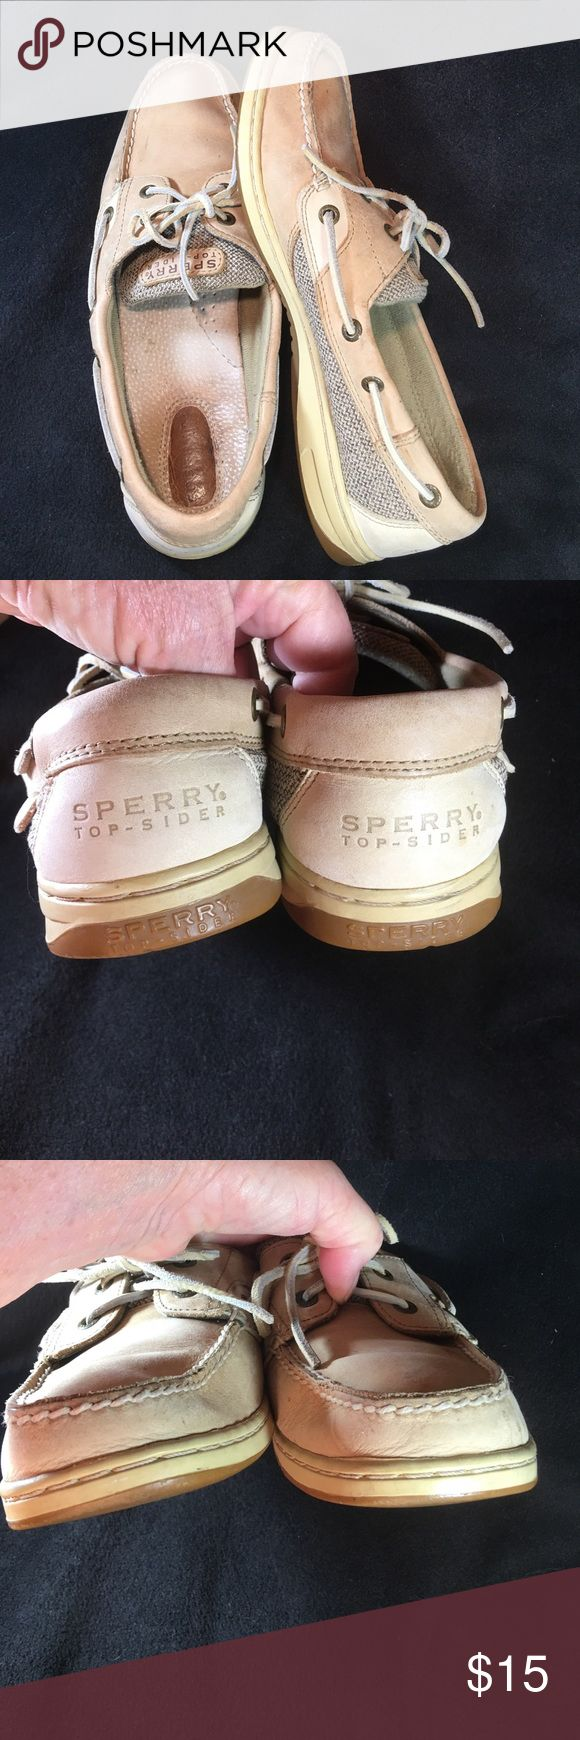 Sperry Top Sider Leather Upper 2Toned Tan 11 M Non marking sole. Padded instep. Leather laces. All stitching is intact. Some spots. Non smoking home Sperry Top-Sider Shoes Flats & Loafers